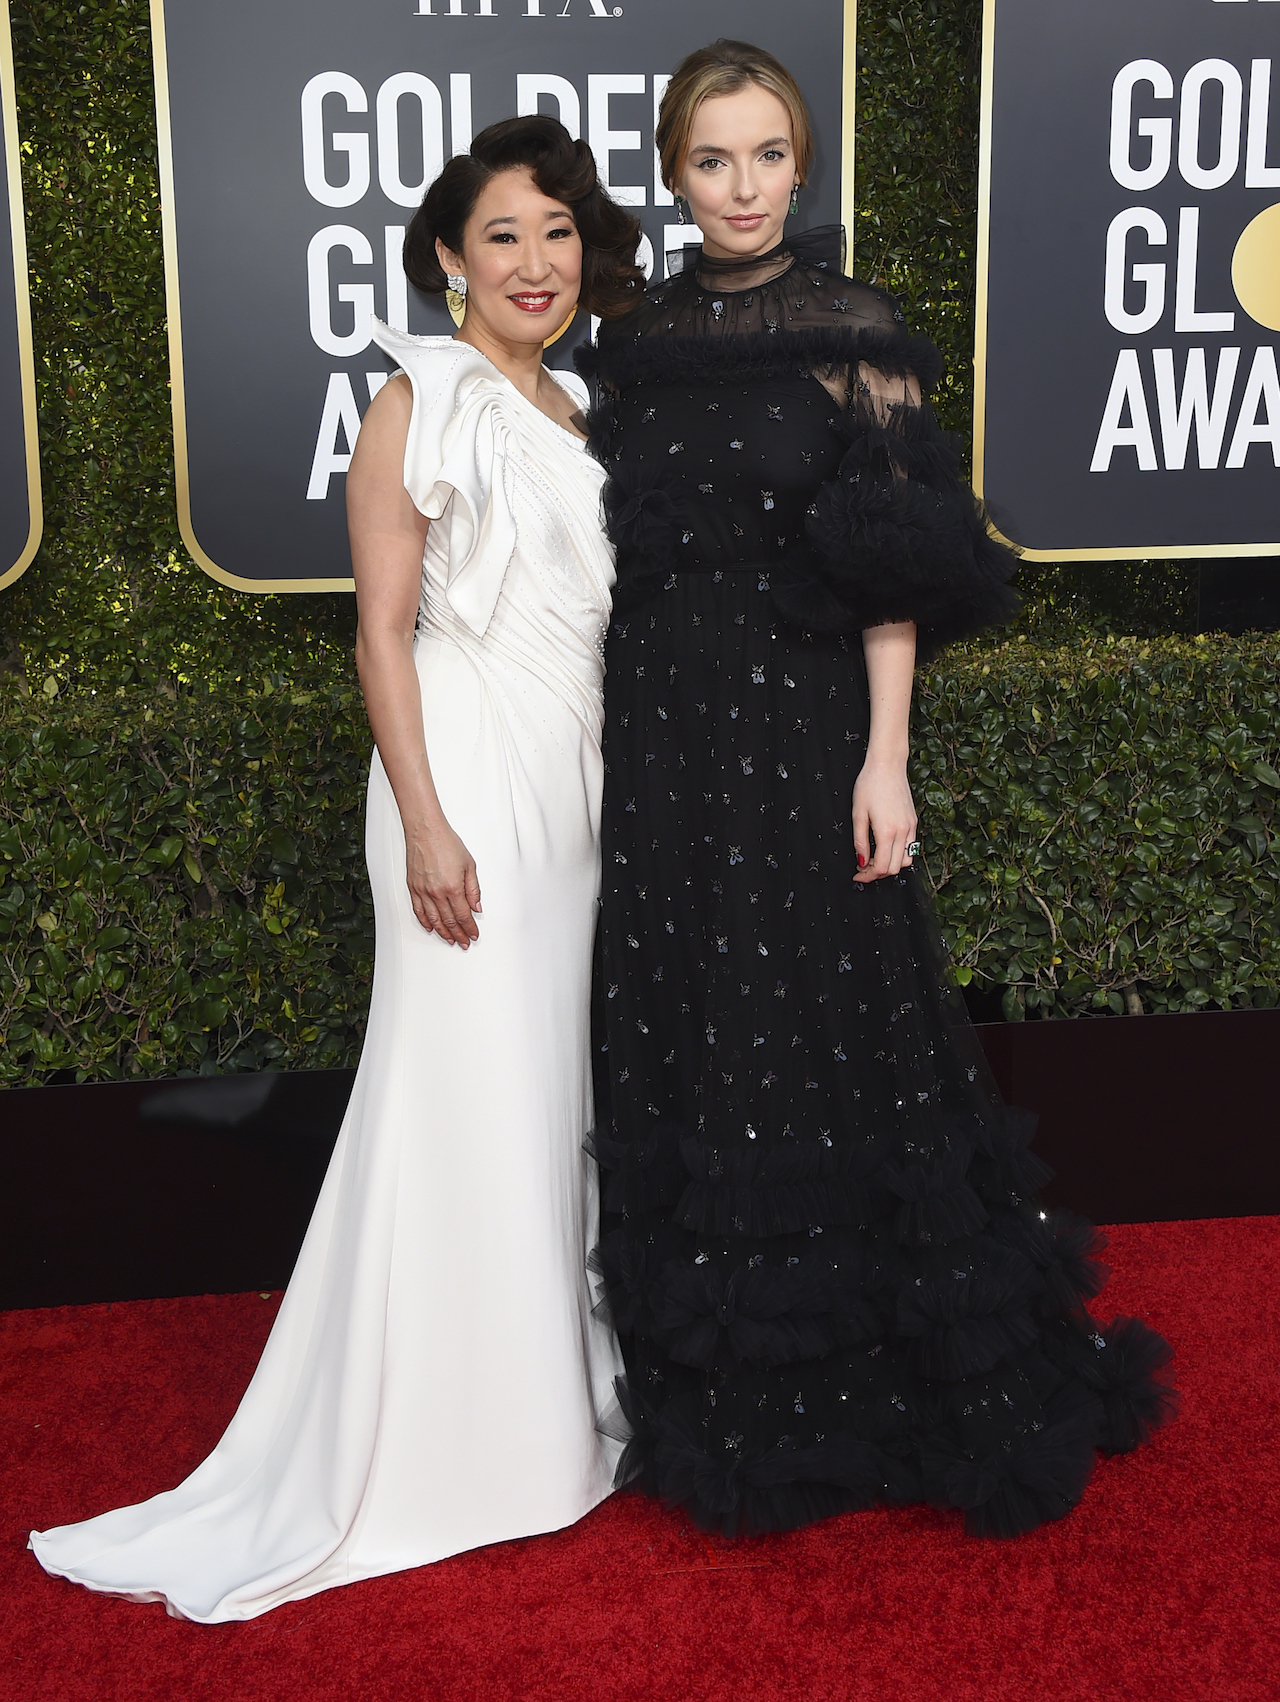 "<div class=""meta image-caption""><div class=""origin-logo origin-image ap""><span>AP</span></div><span class=""caption-text"">Sandra Oh, left, and Jodie Comer arrive at the 76th annual Golden Globe Awards at the Beverly Hilton Hotel on Sunday, Jan. 6, 2019, in Beverly Hills, Calif. (Invision)</span></div>"